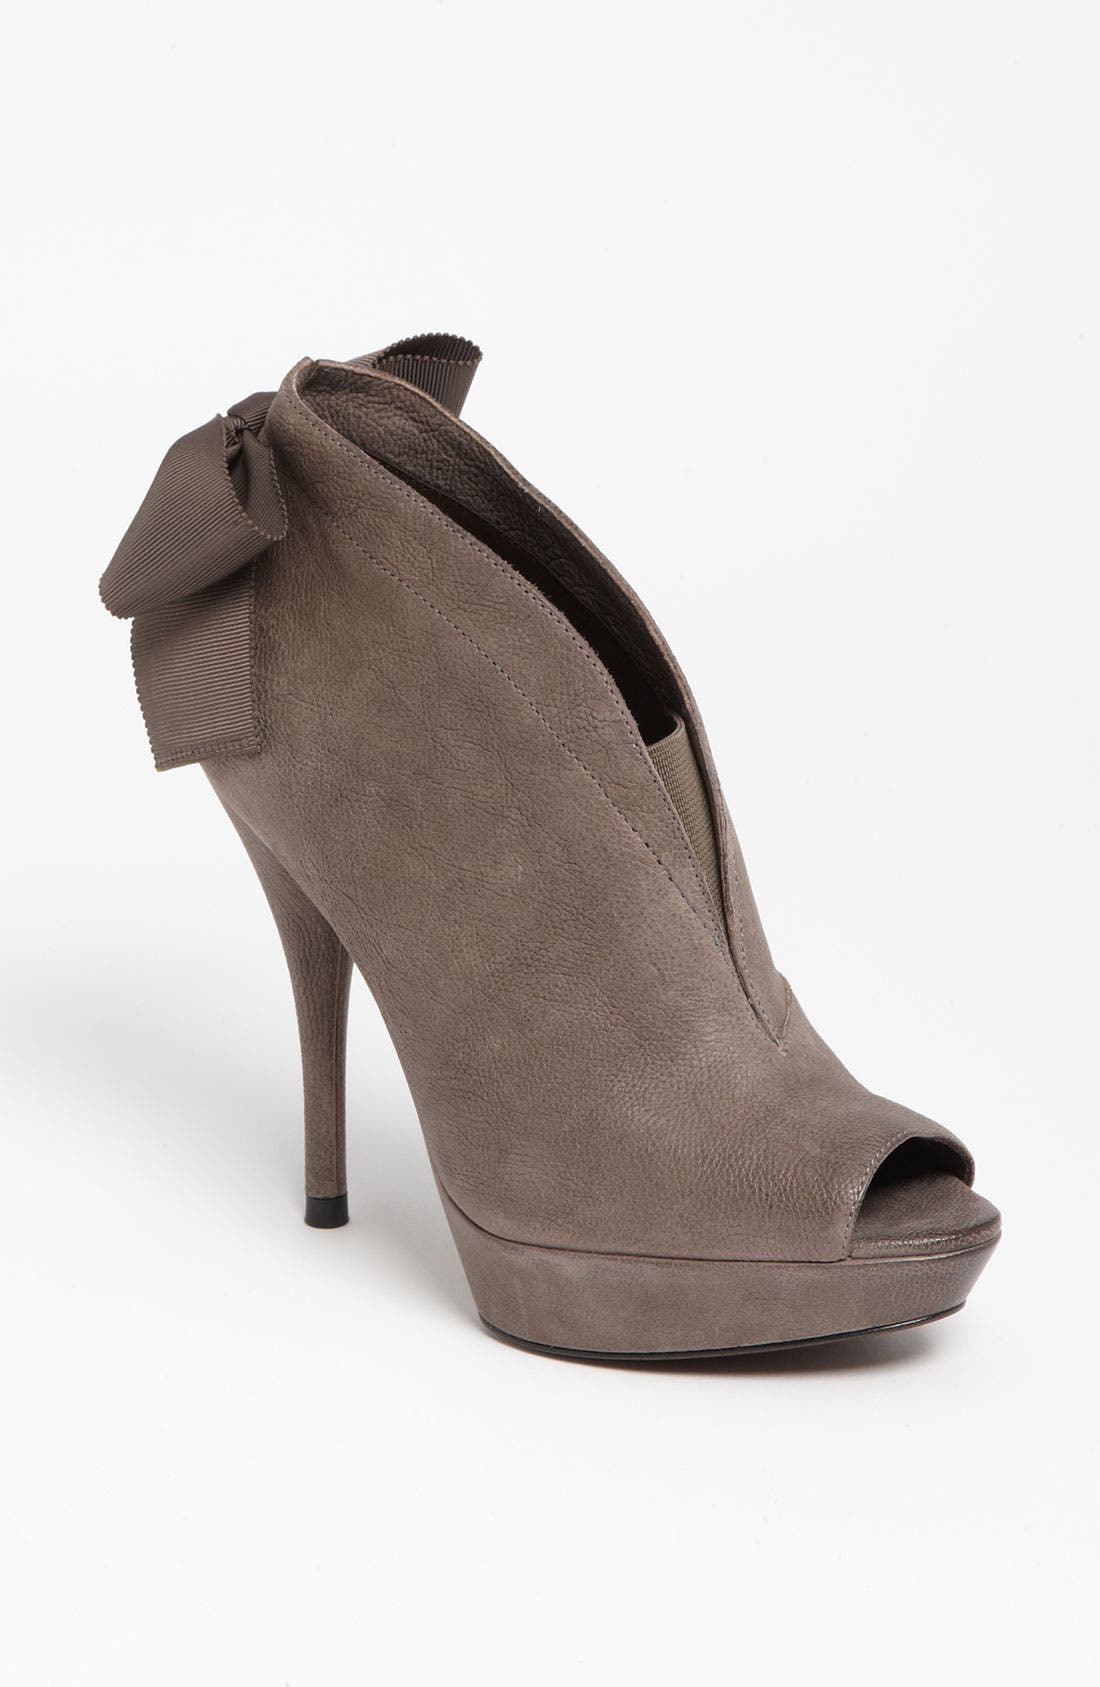 Alternate Image 1 Selected - Vera Wang Footwear 'Royce' Bootie